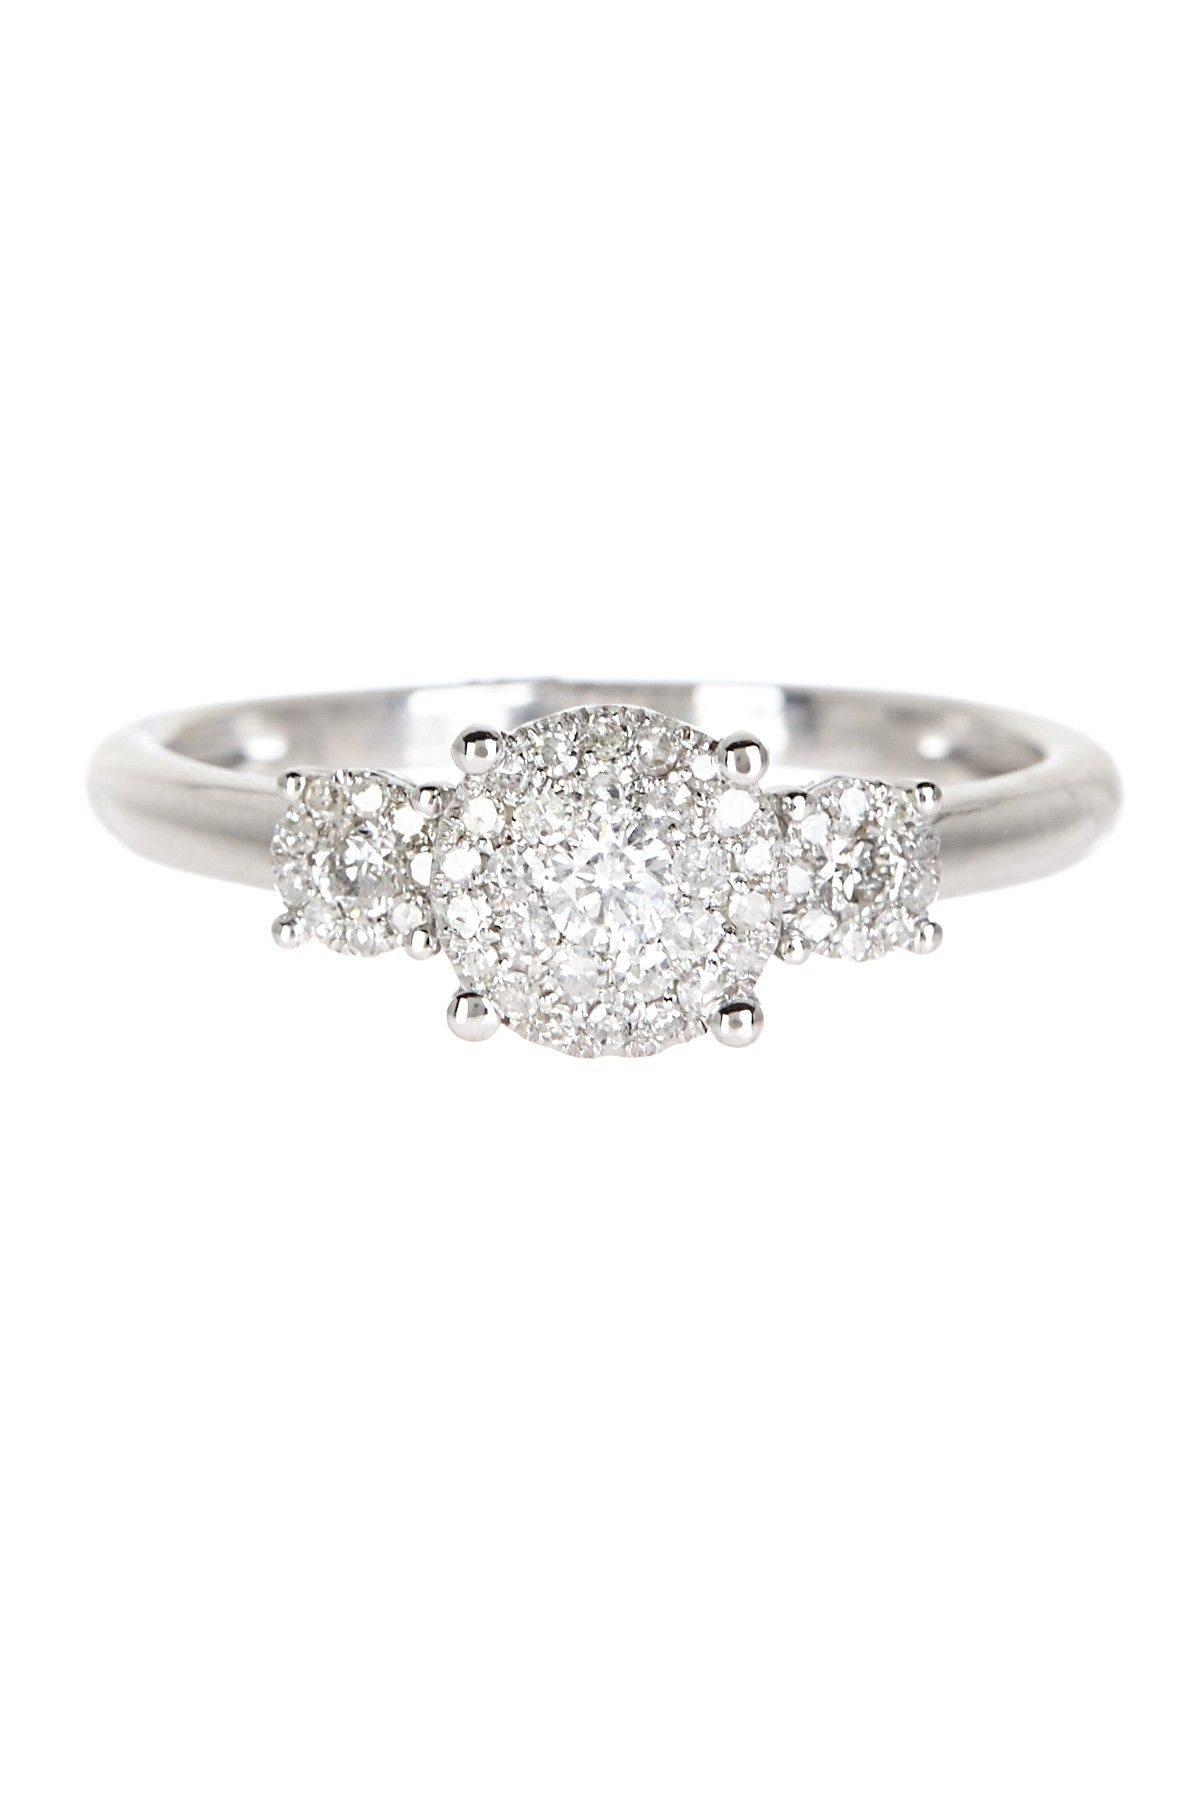 14K White Gold Triple Pave Diamond Ring FASHION GIFTS FOODS